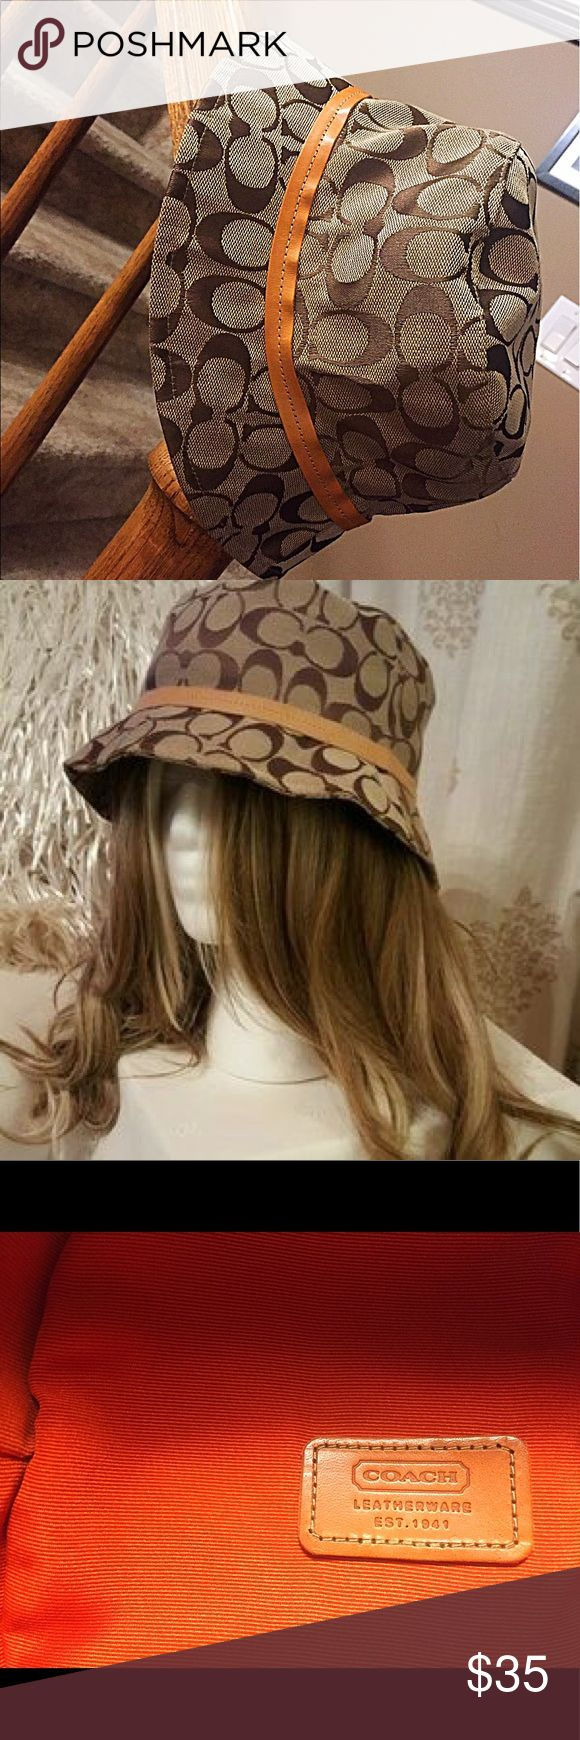 Authentic Coach hat Vintage Coach hat in perfect condition. Coach Accessories Hats